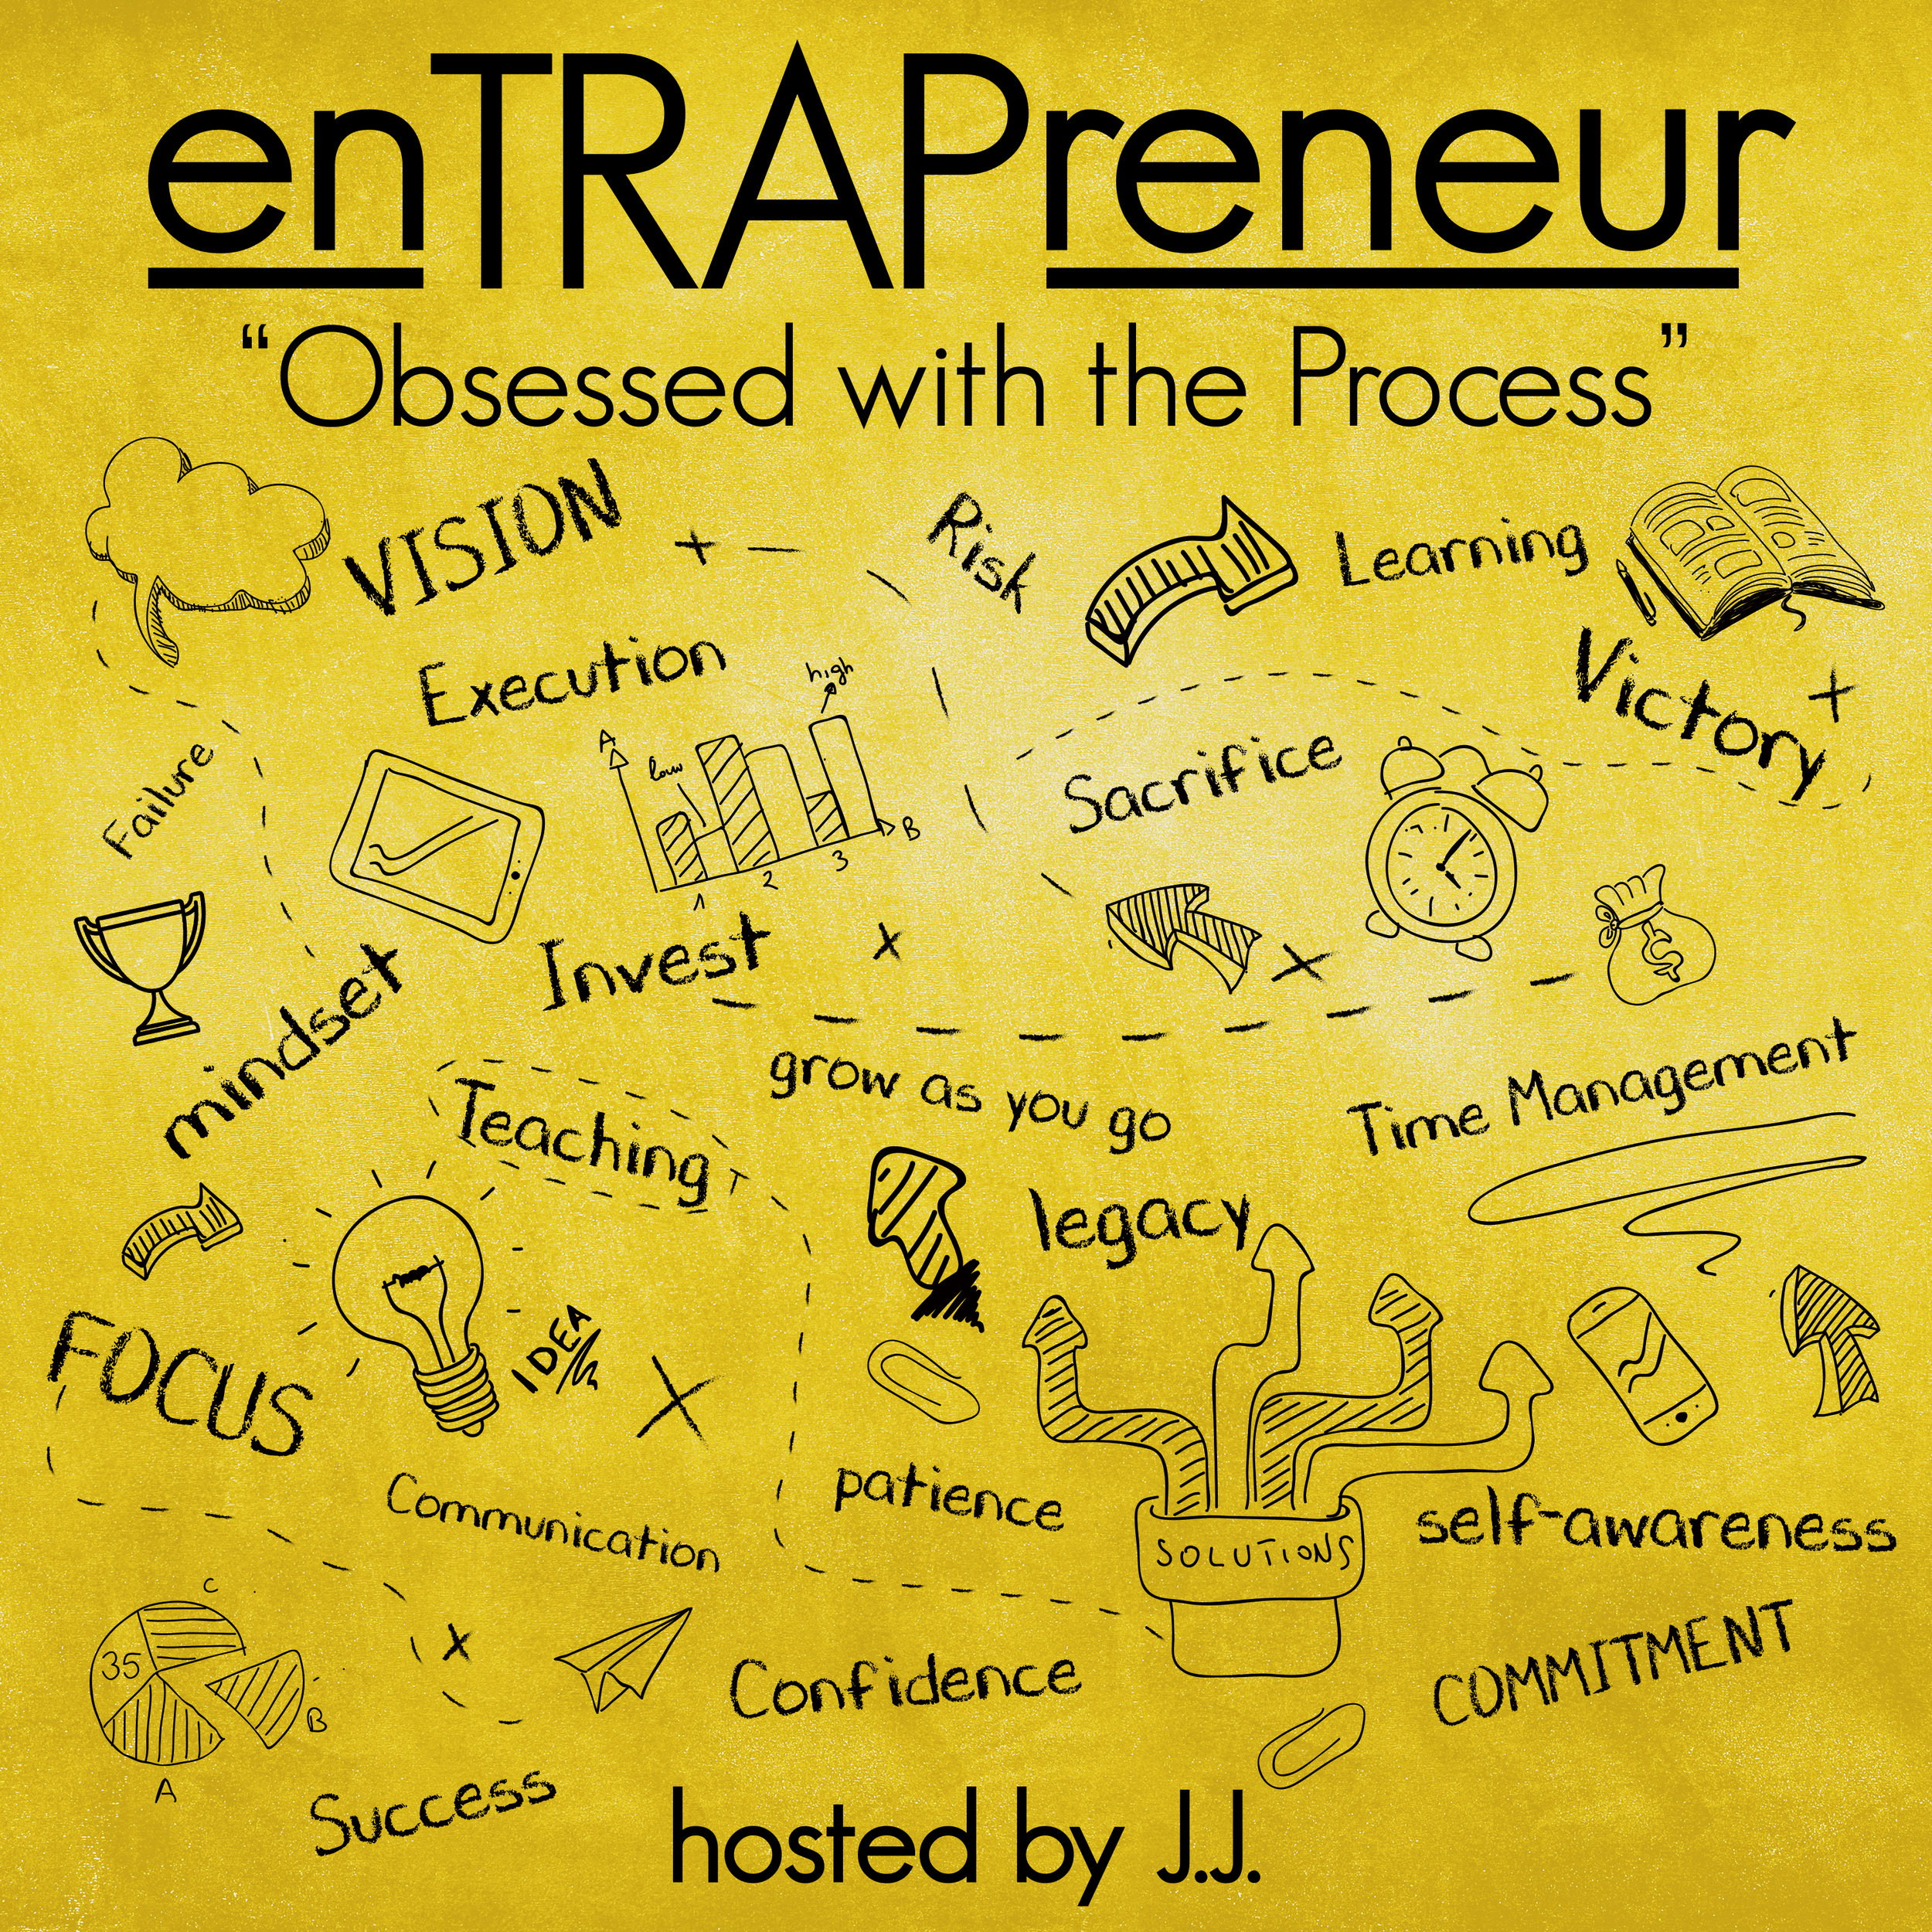 "enTRAPreneur - hosted by J.J.enTRAPreneur is a podcast about the mentality possessed by those executing on their entrepreneurial vision.  J.J. shares his experiences and interviews other enTRAPreneurs who share their journey.  They cover the nuts and bolts of building a business and why it is a must that an enTRAPreneur be ""Obsessed with the Process""."